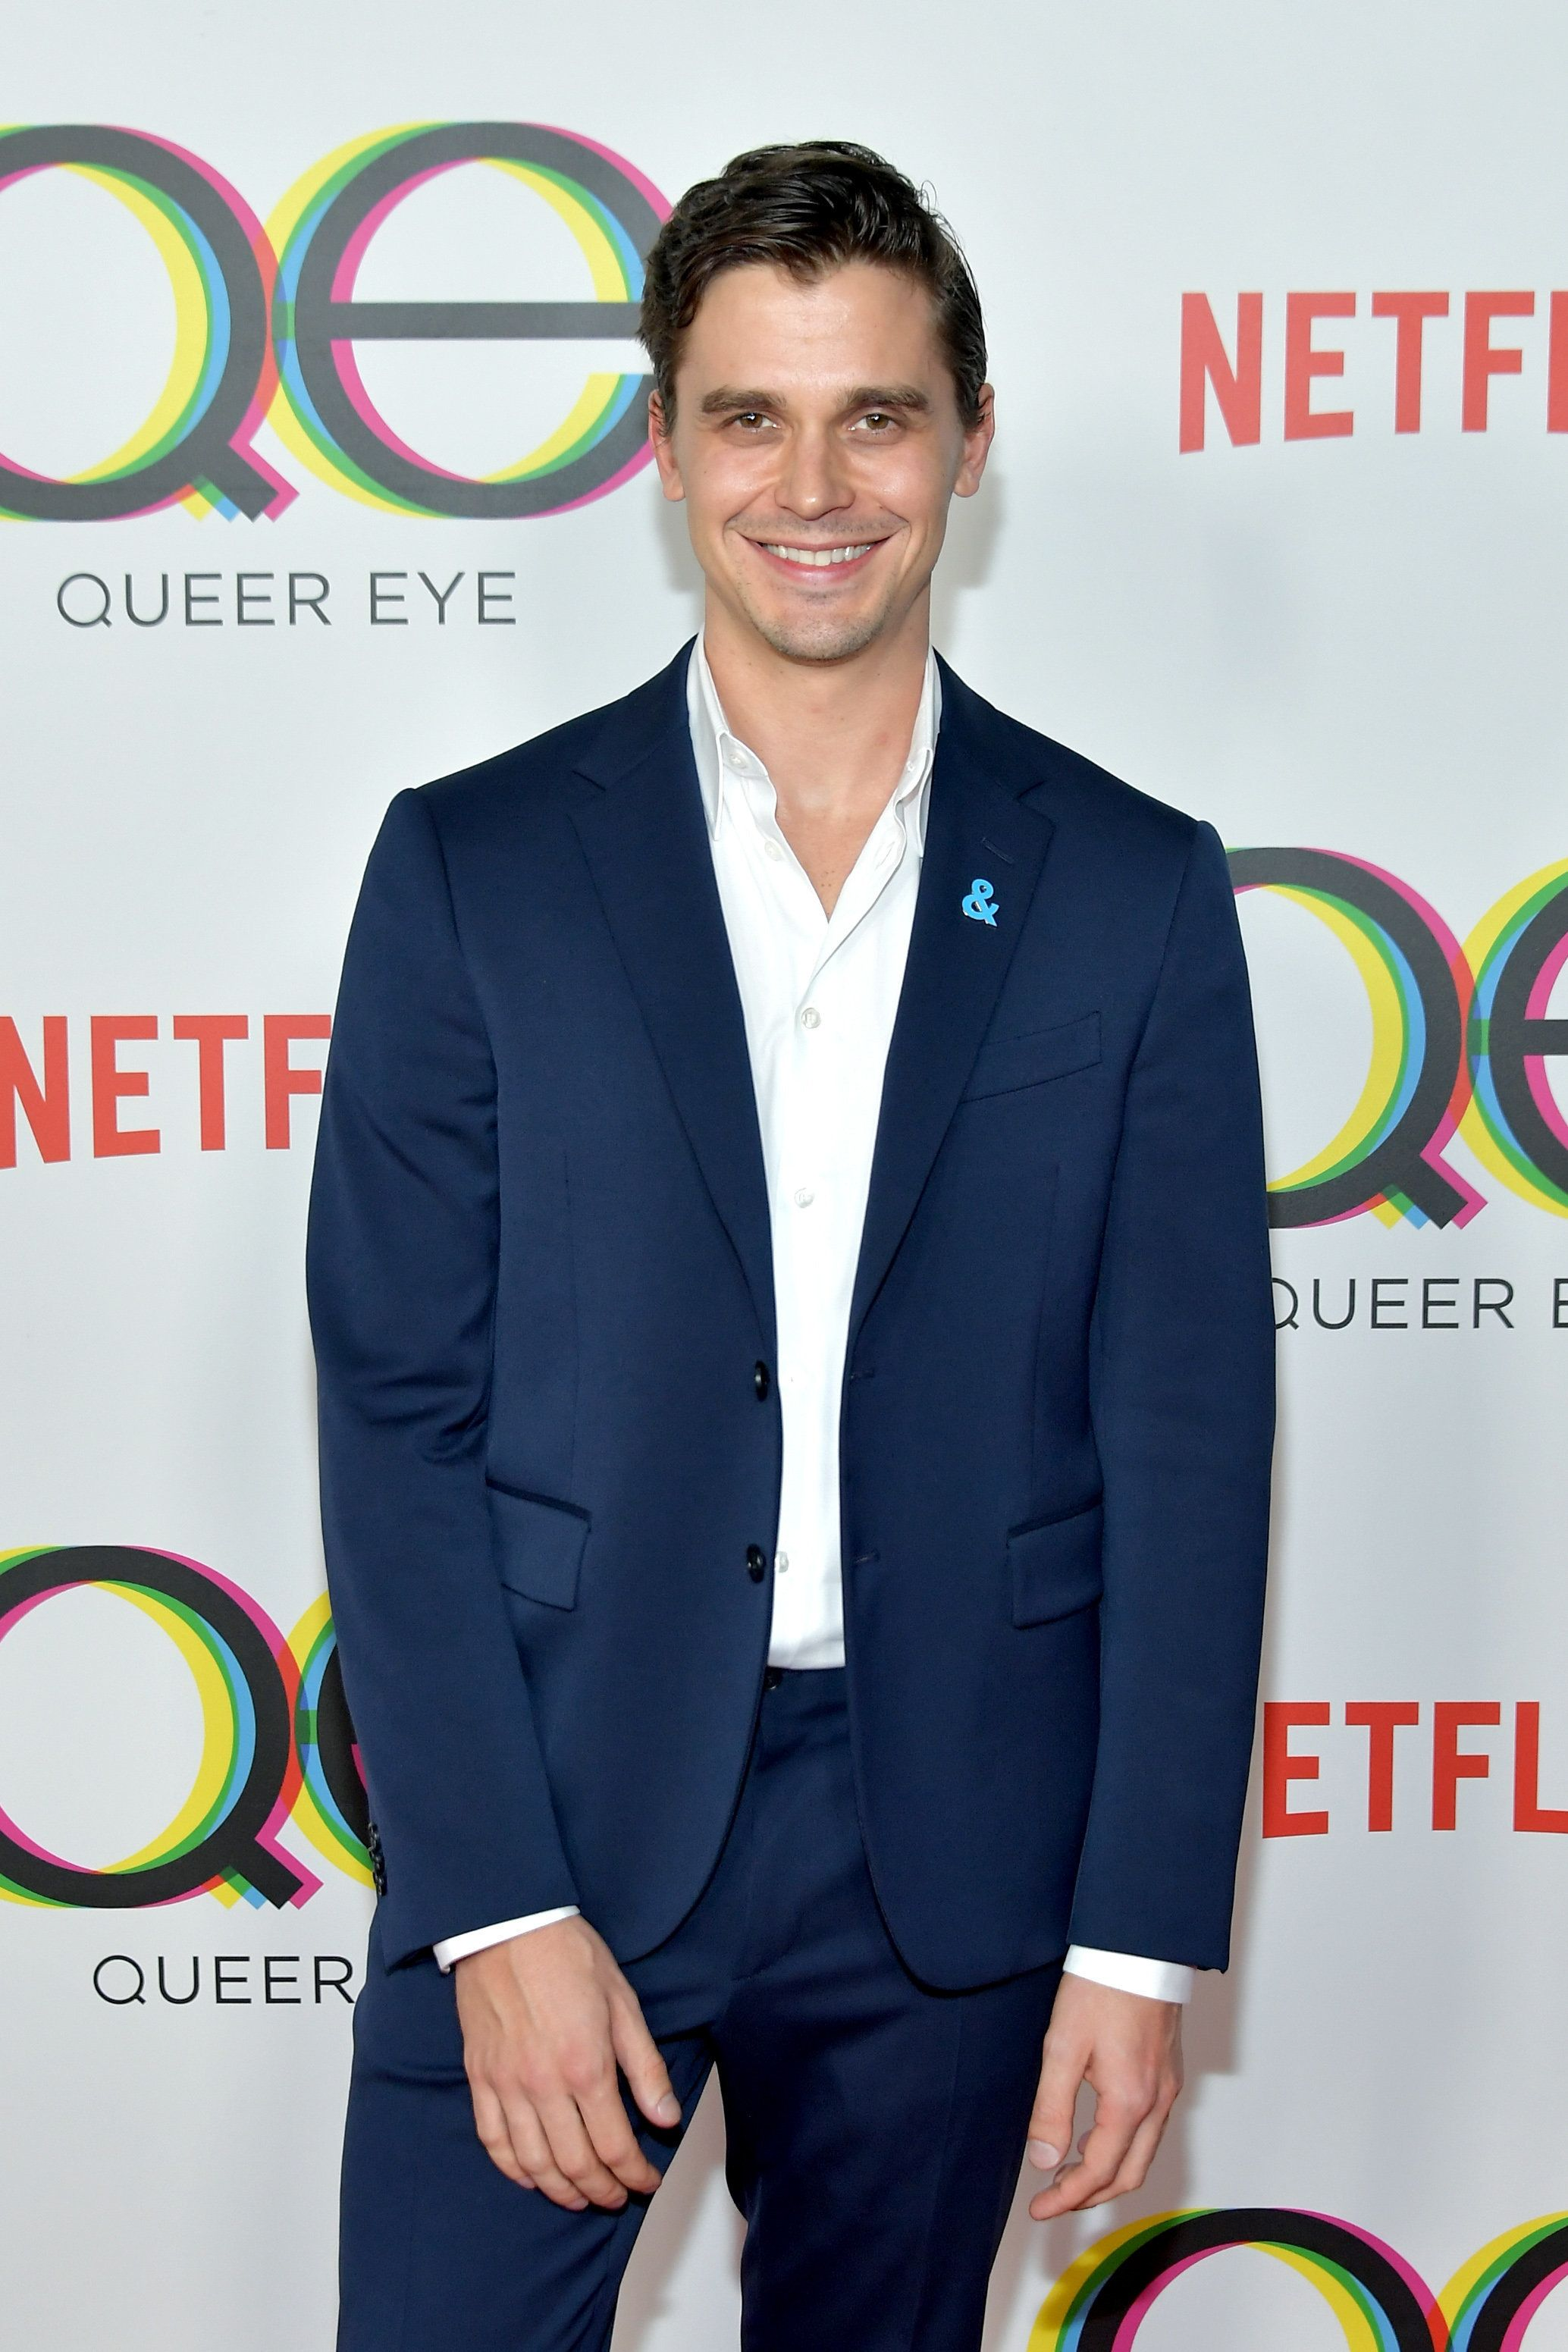 Antoni From 'Queer Eye' Has His Very Own Cookbook Deal